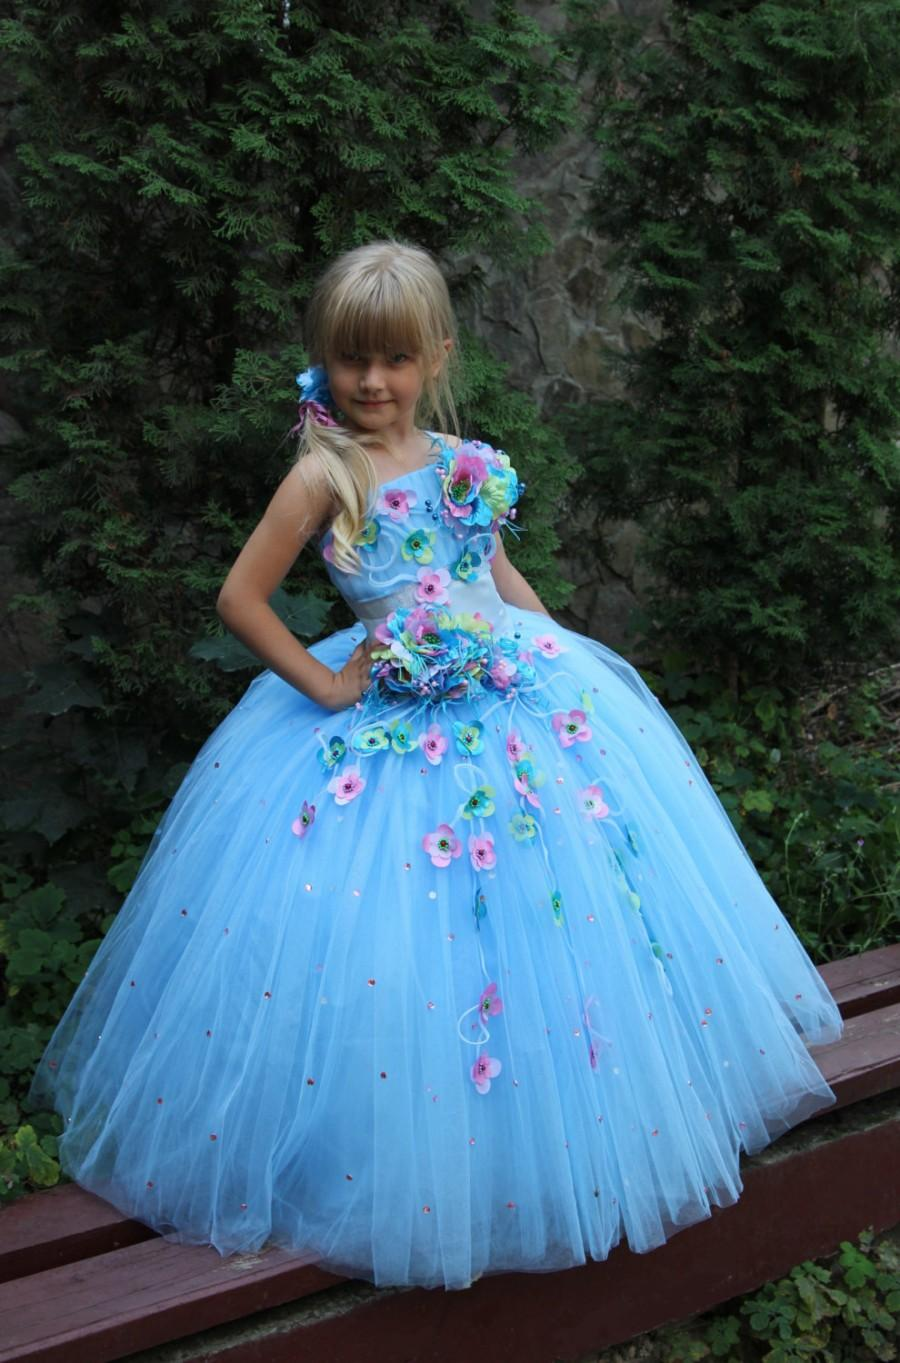 White Blue Orange Turquoise Flower Girls Dress Birthday Wedding